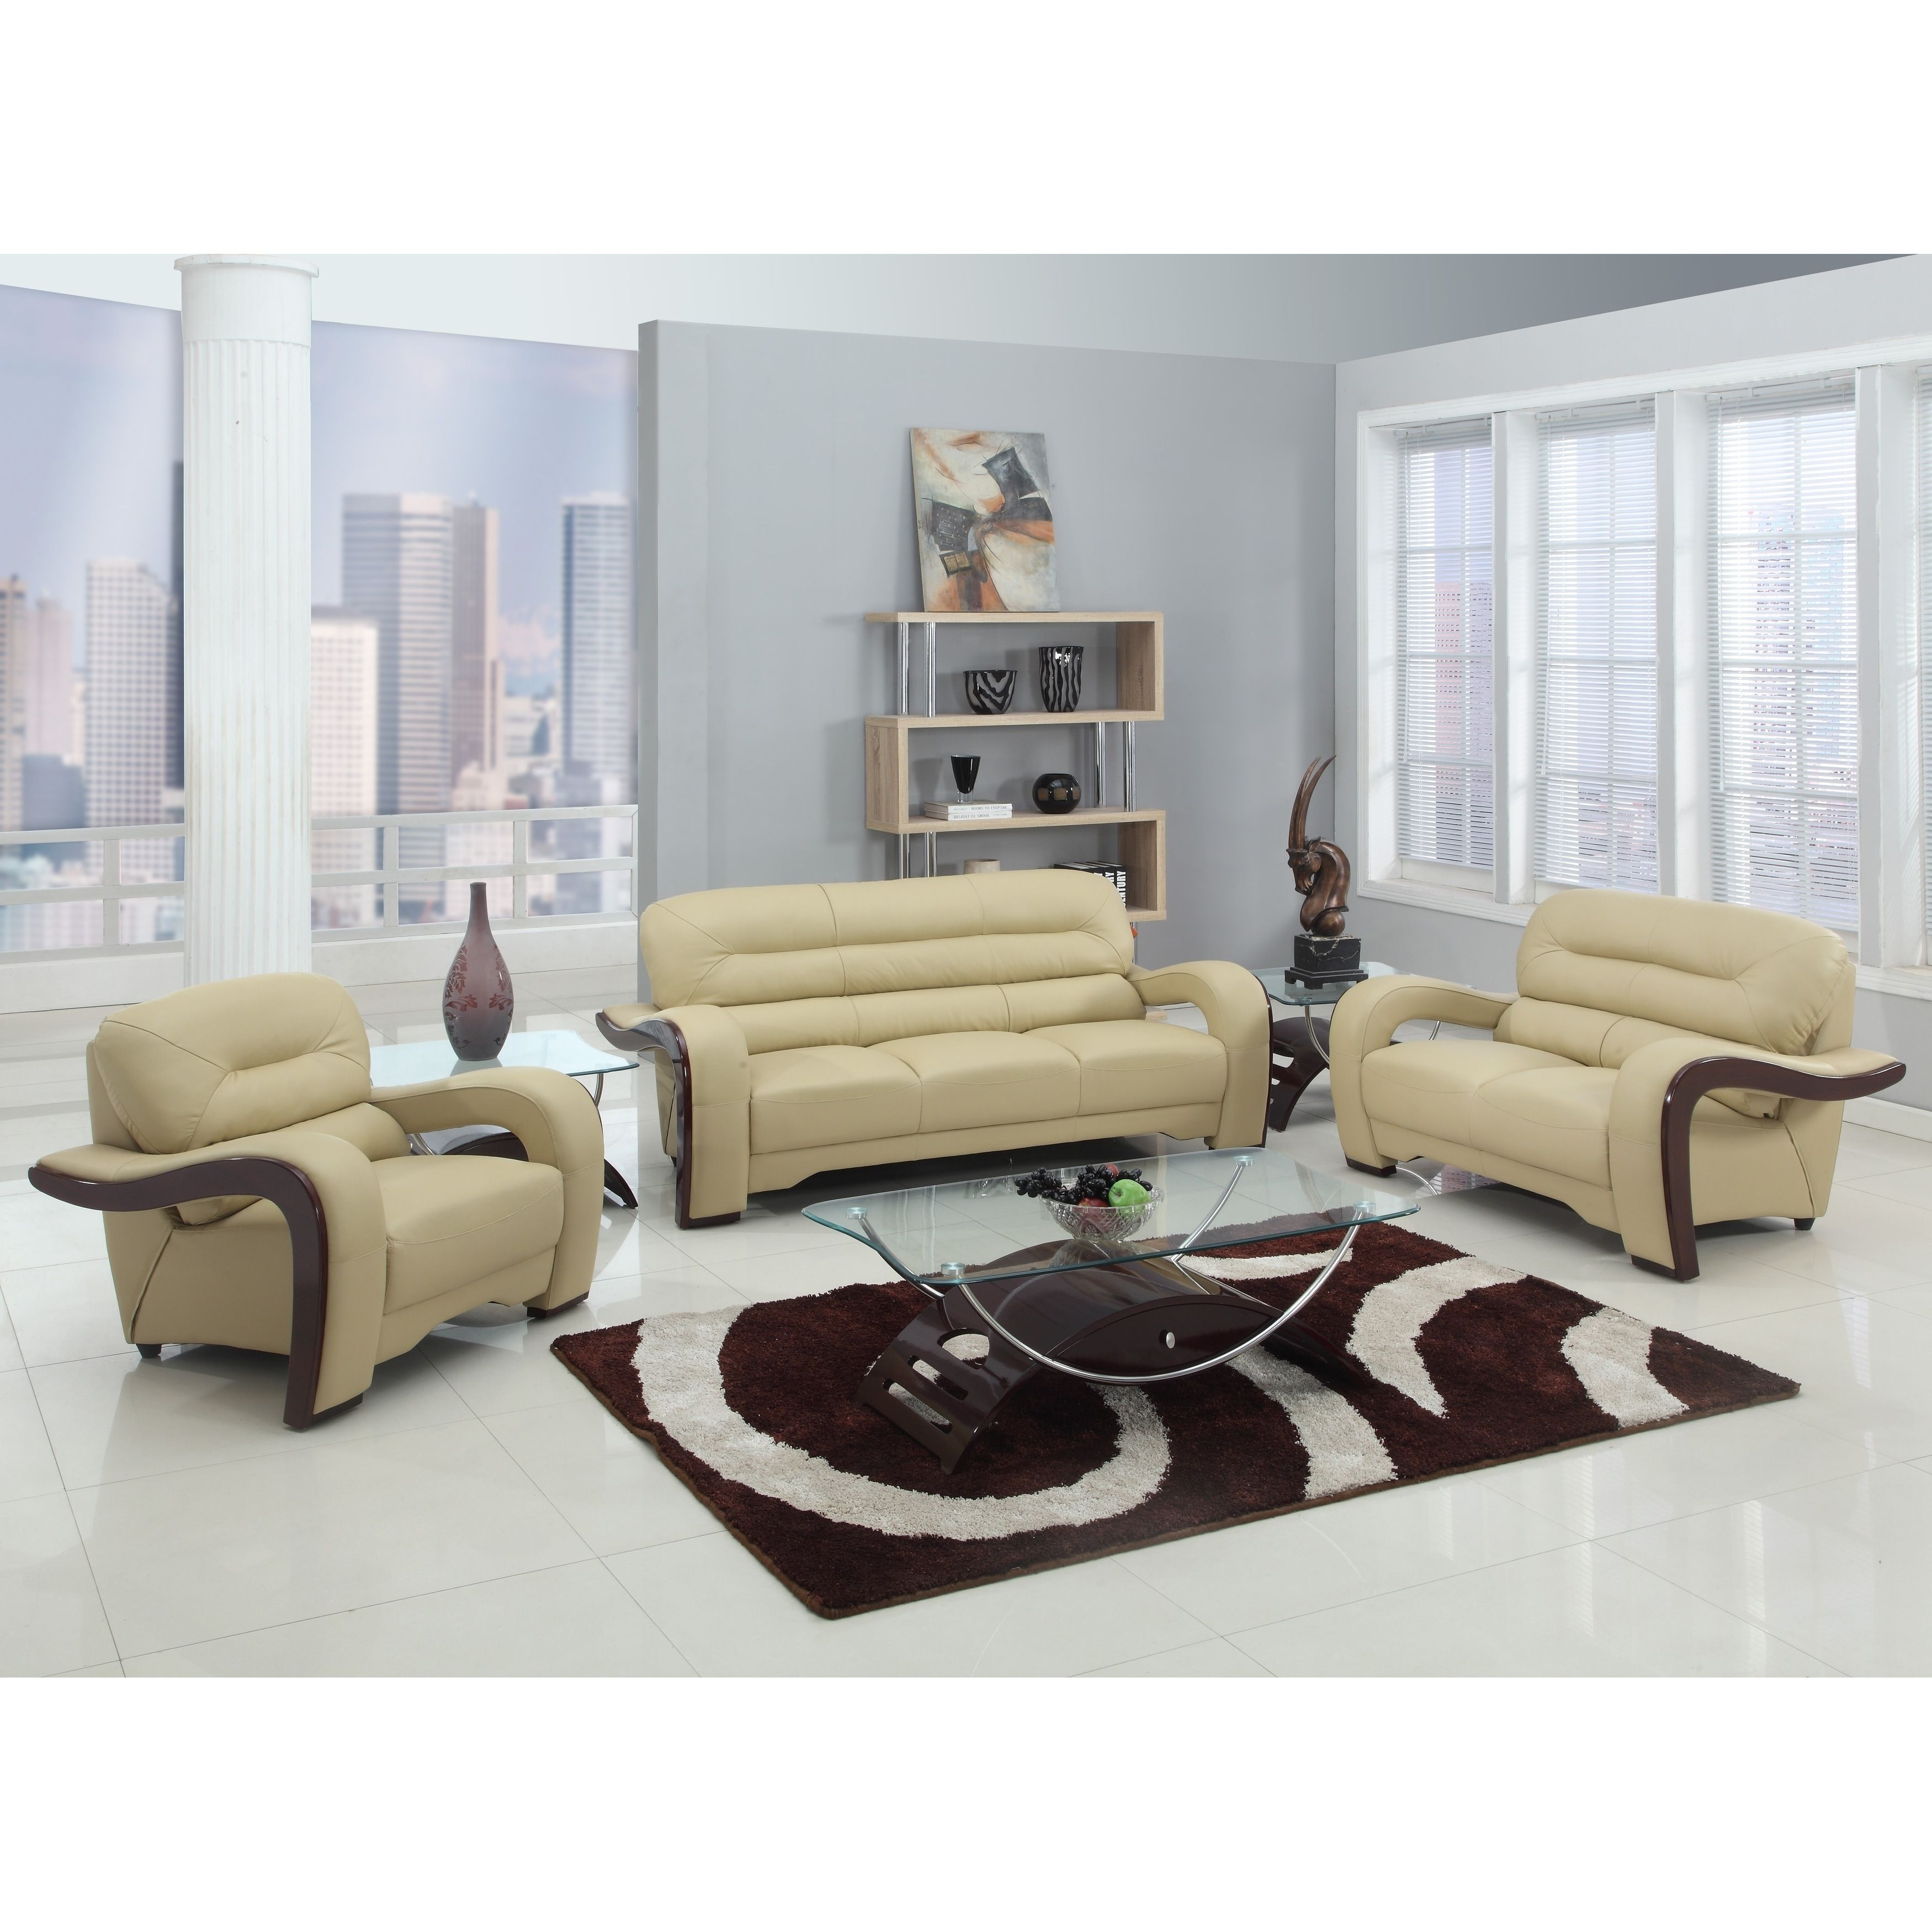 GU Industries Leather/Match Upholstered 3-Piece Living Room Sofa Set ...